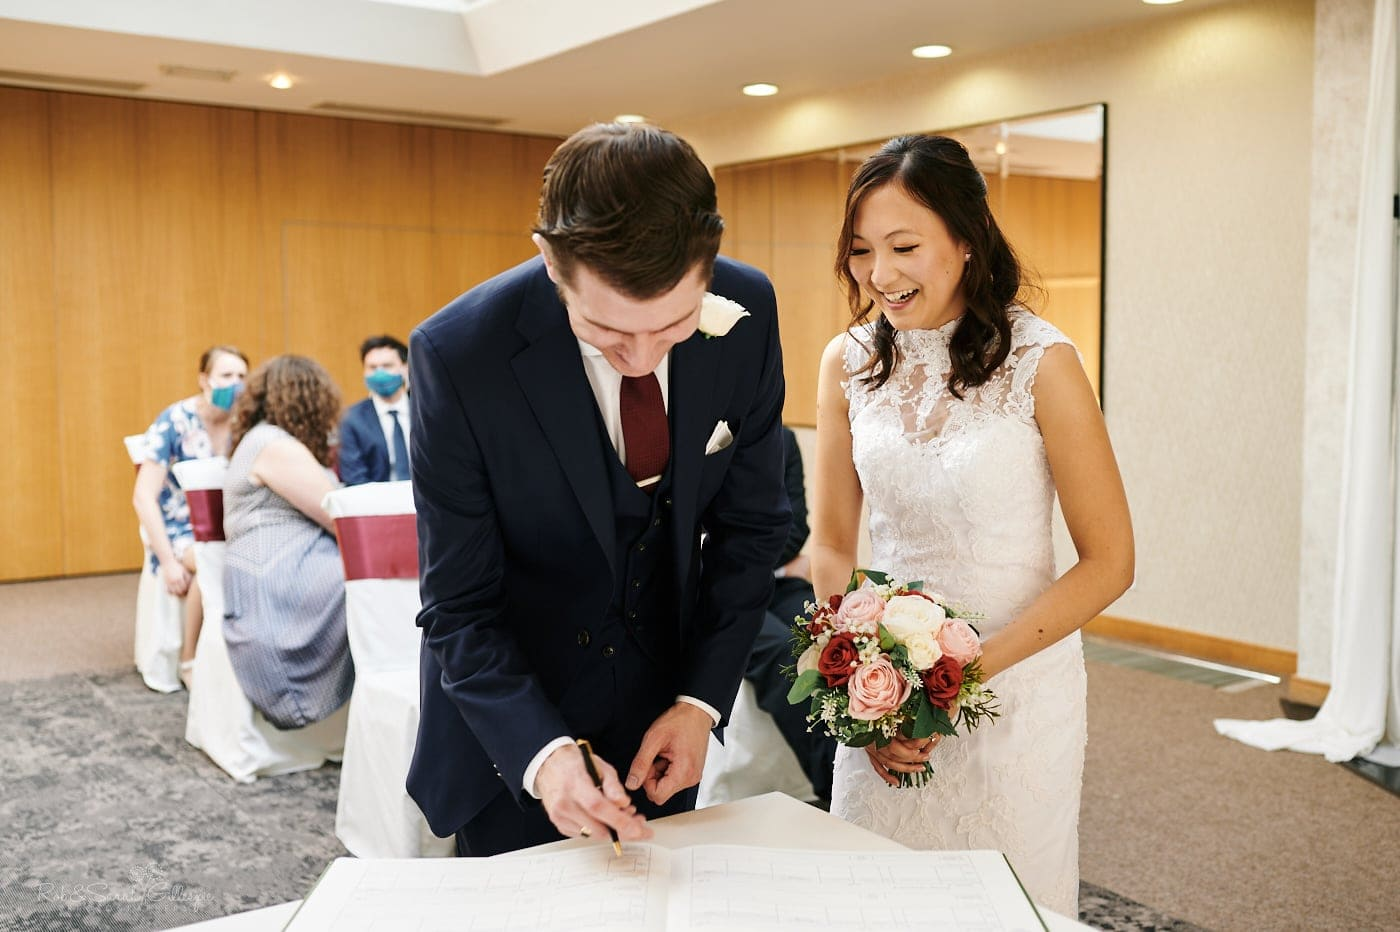 Bride and groom sign marriage register at Mallory Court wedding